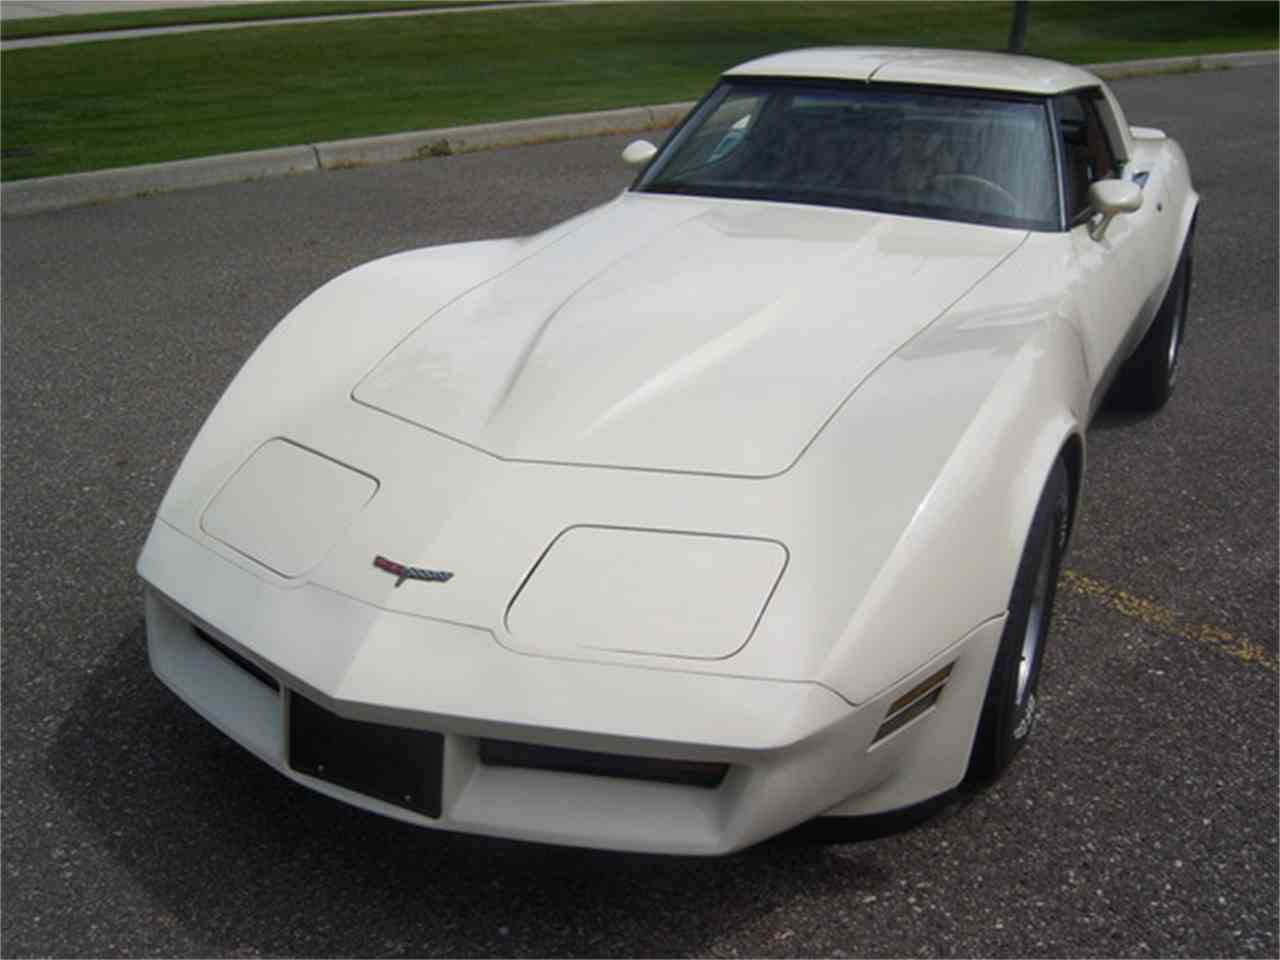 Large Picture of 1981 Chevrolet Corvette located in Fort Myers/ Macomb, MI Florida - $9,900.00 Offered by More Muscle Cars - J2I3